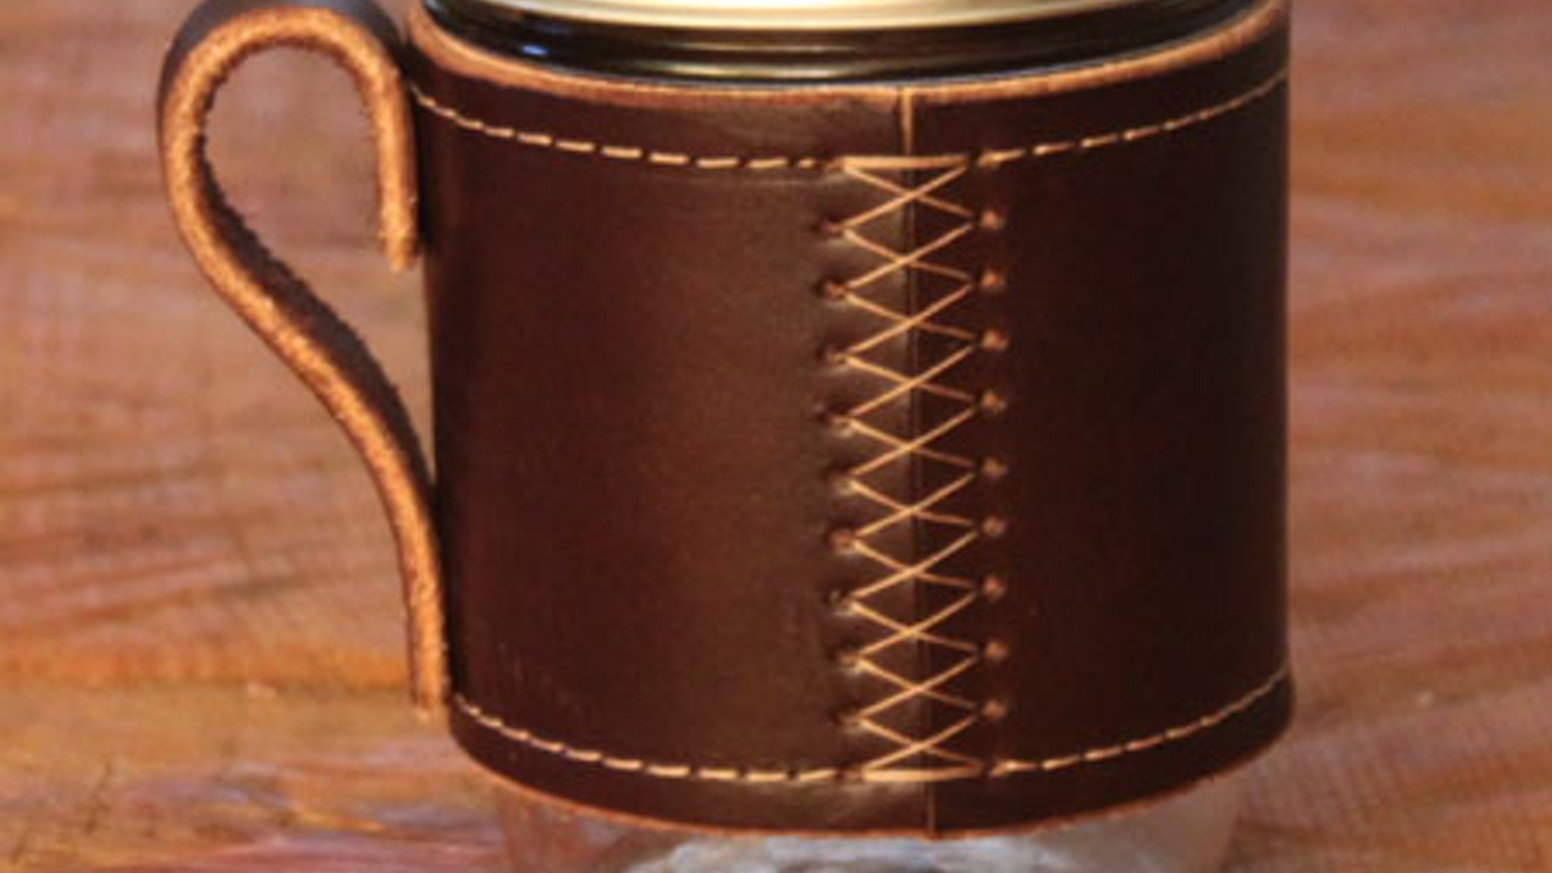 The Holdster converts mason jars into sexy, leather-bound mugs.  Your beverage has never looked so good.